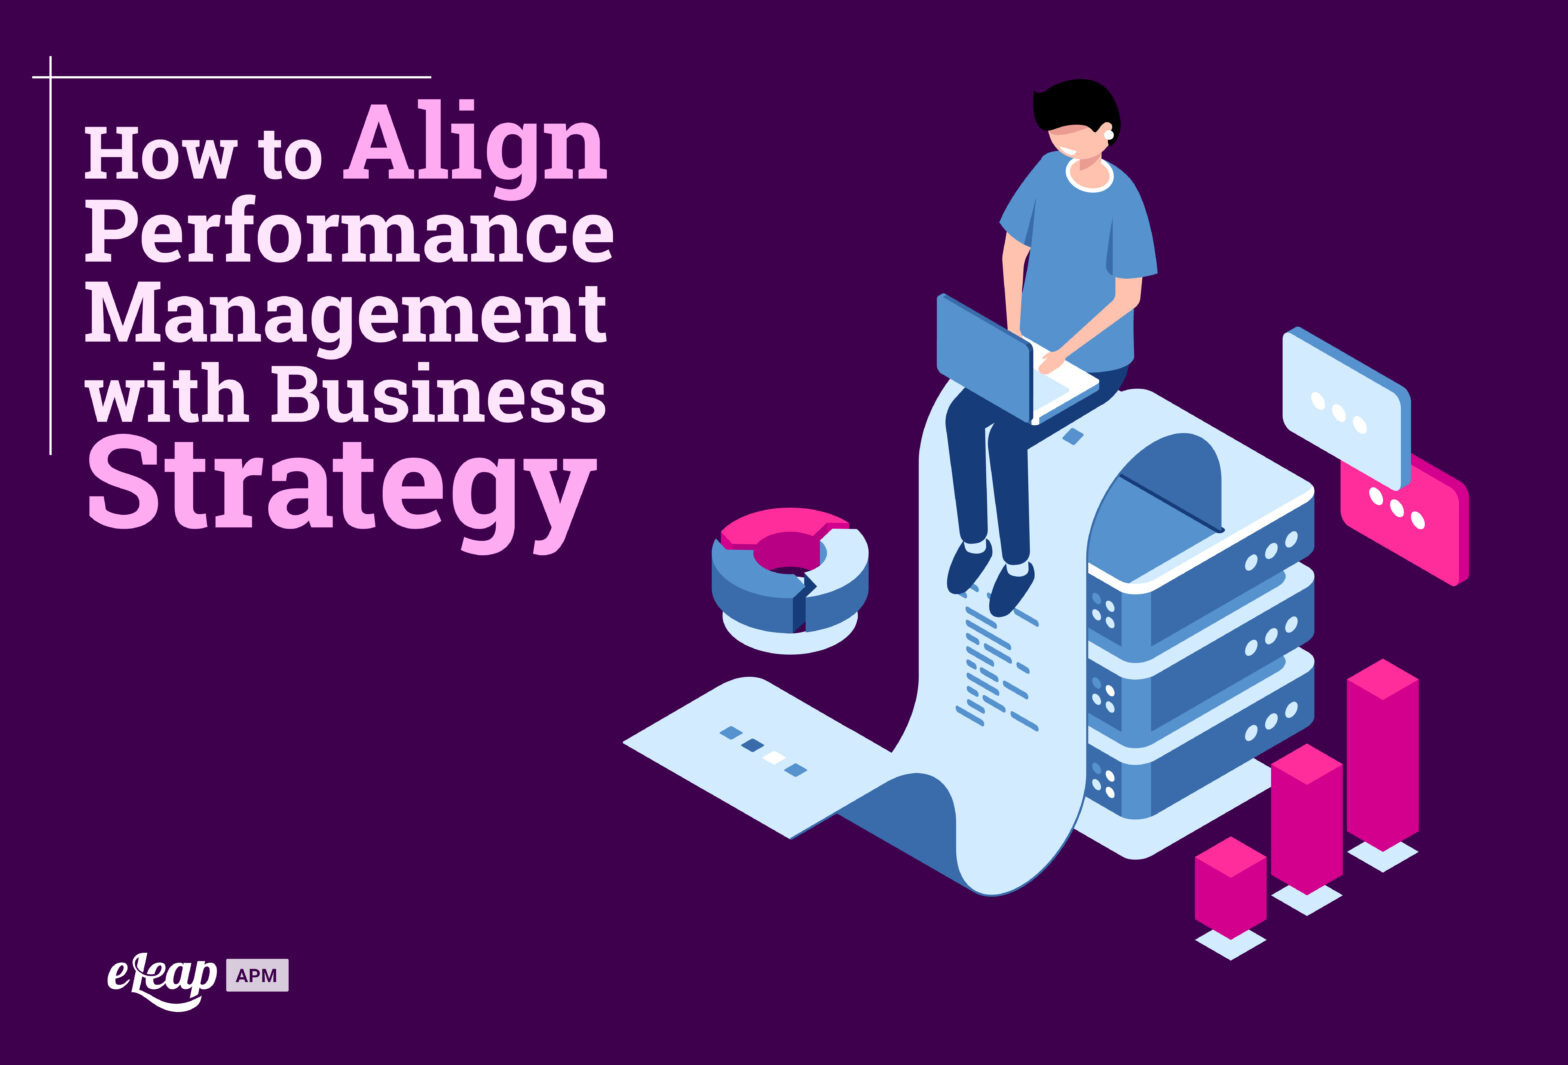 How to Align Performance Management with Business Strategy